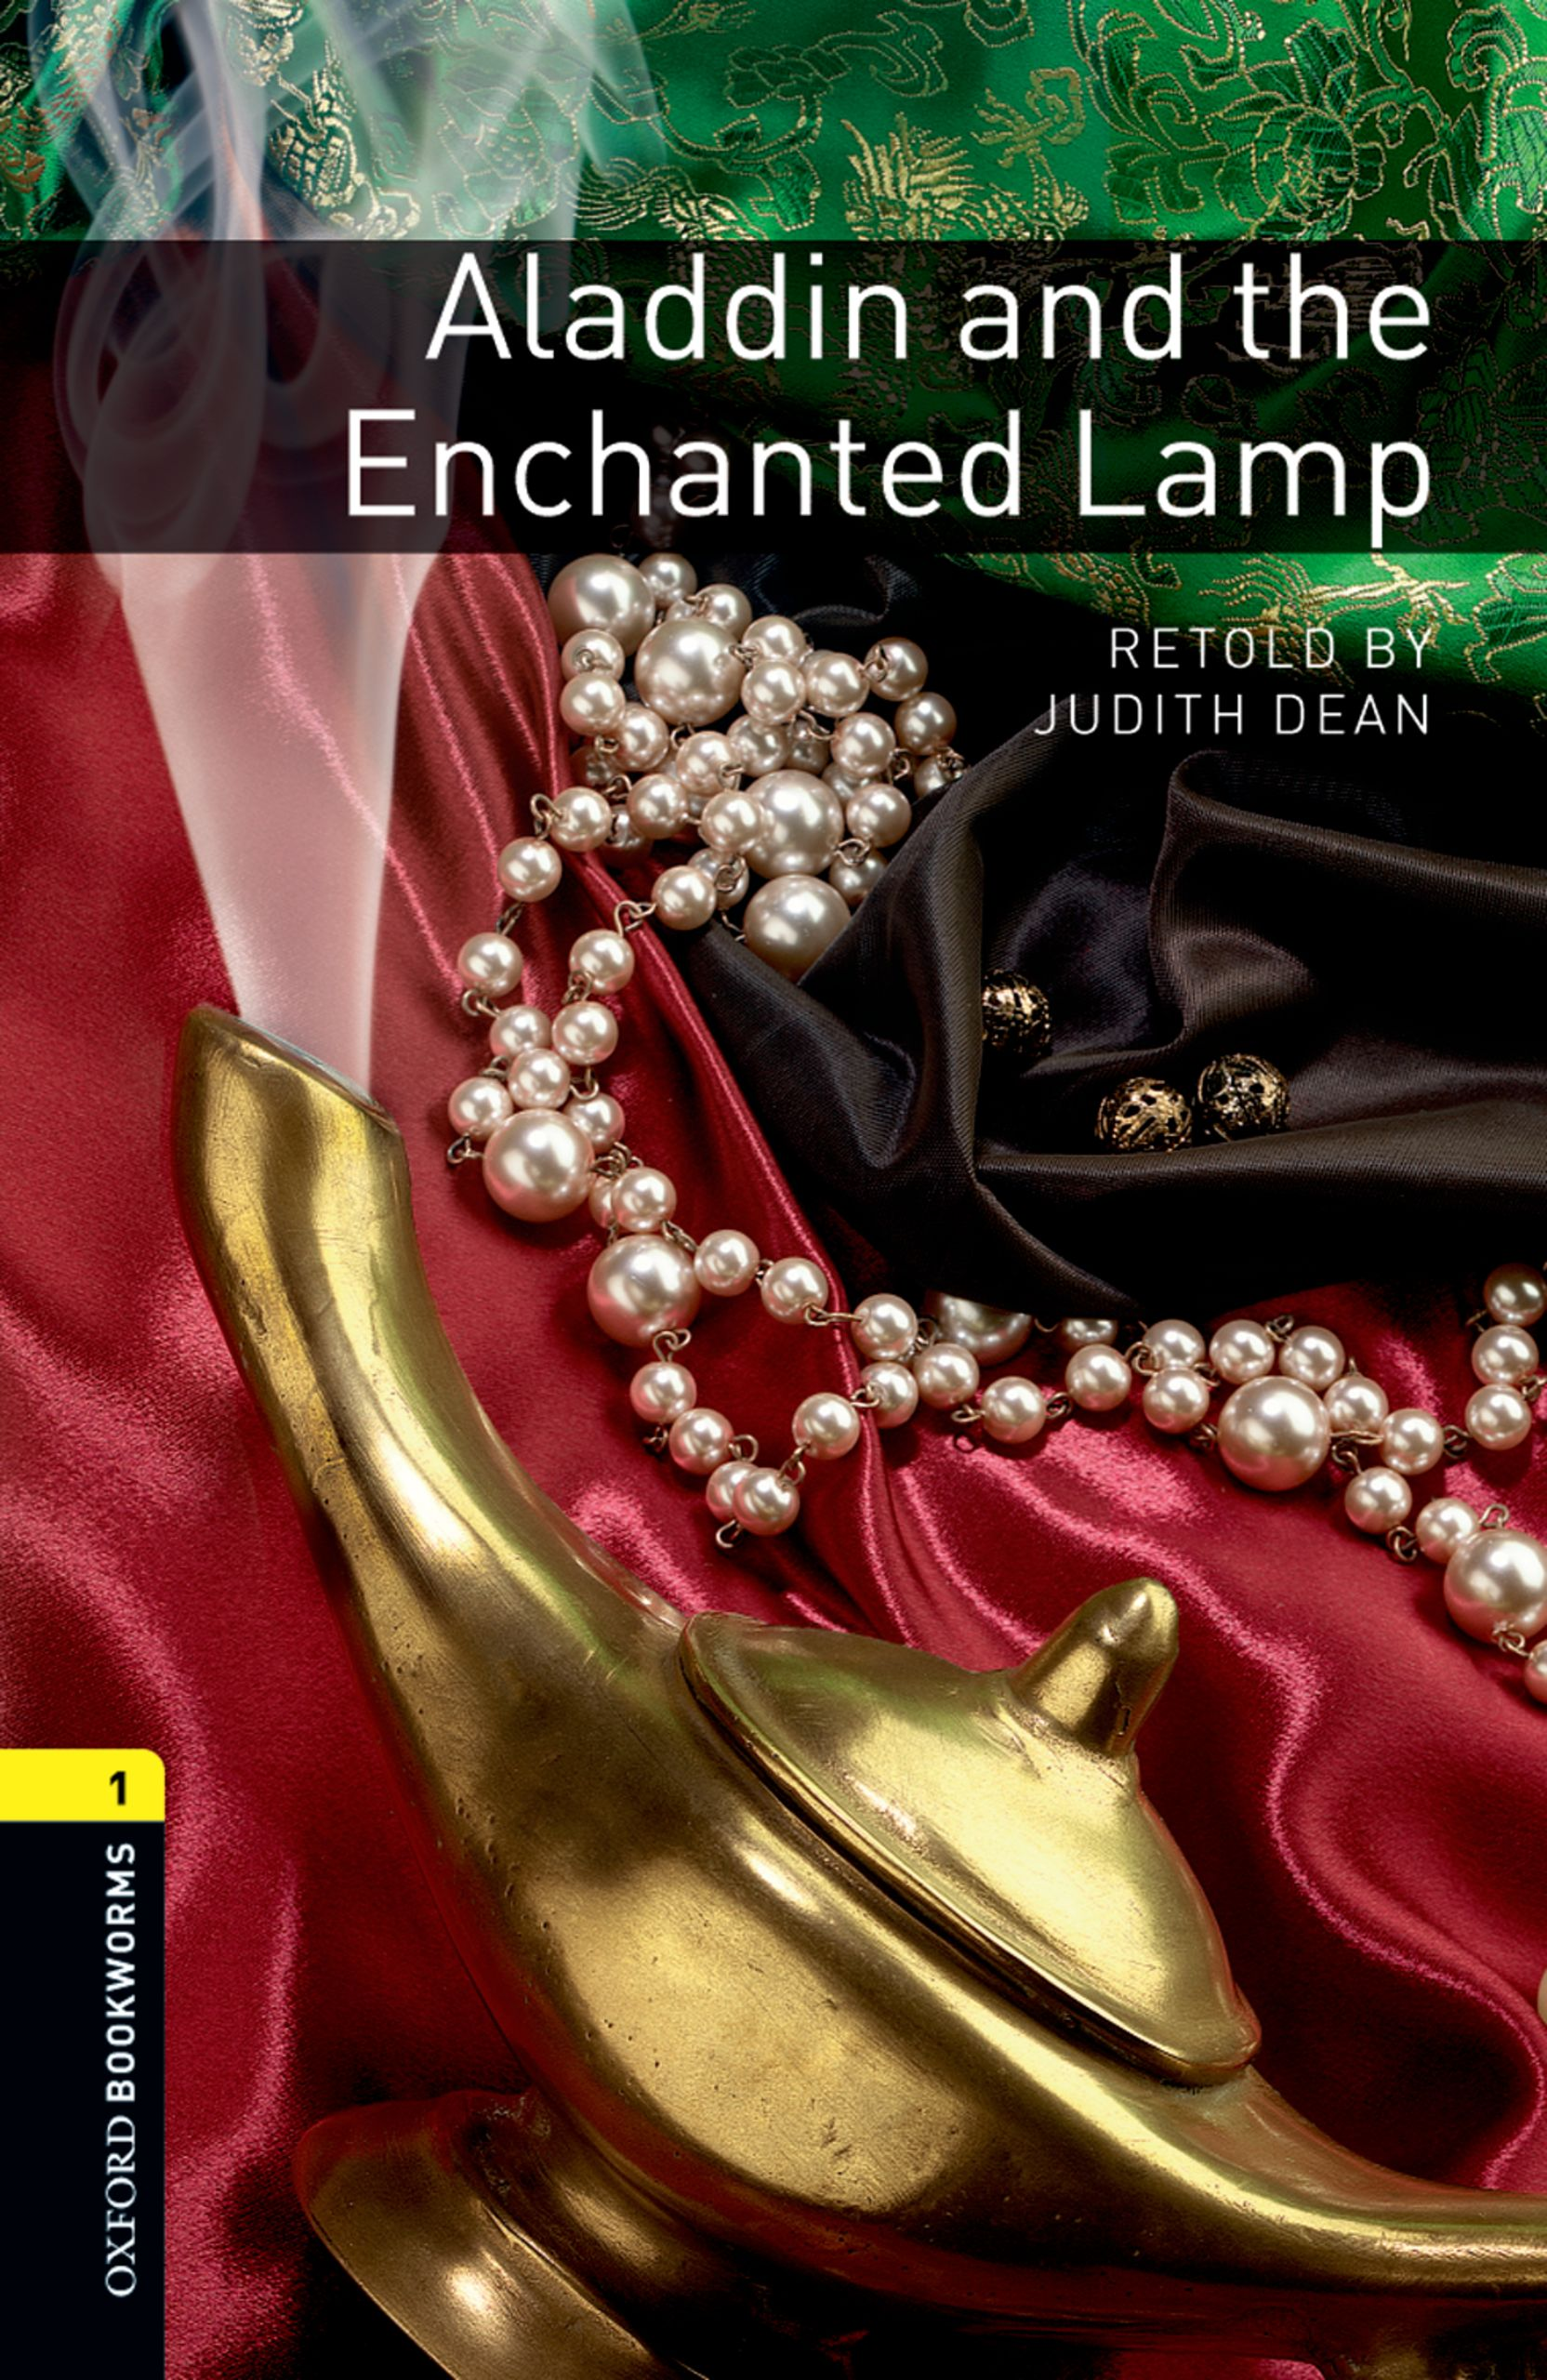 Judith Dean Aladdin and the Enchanted Lamp